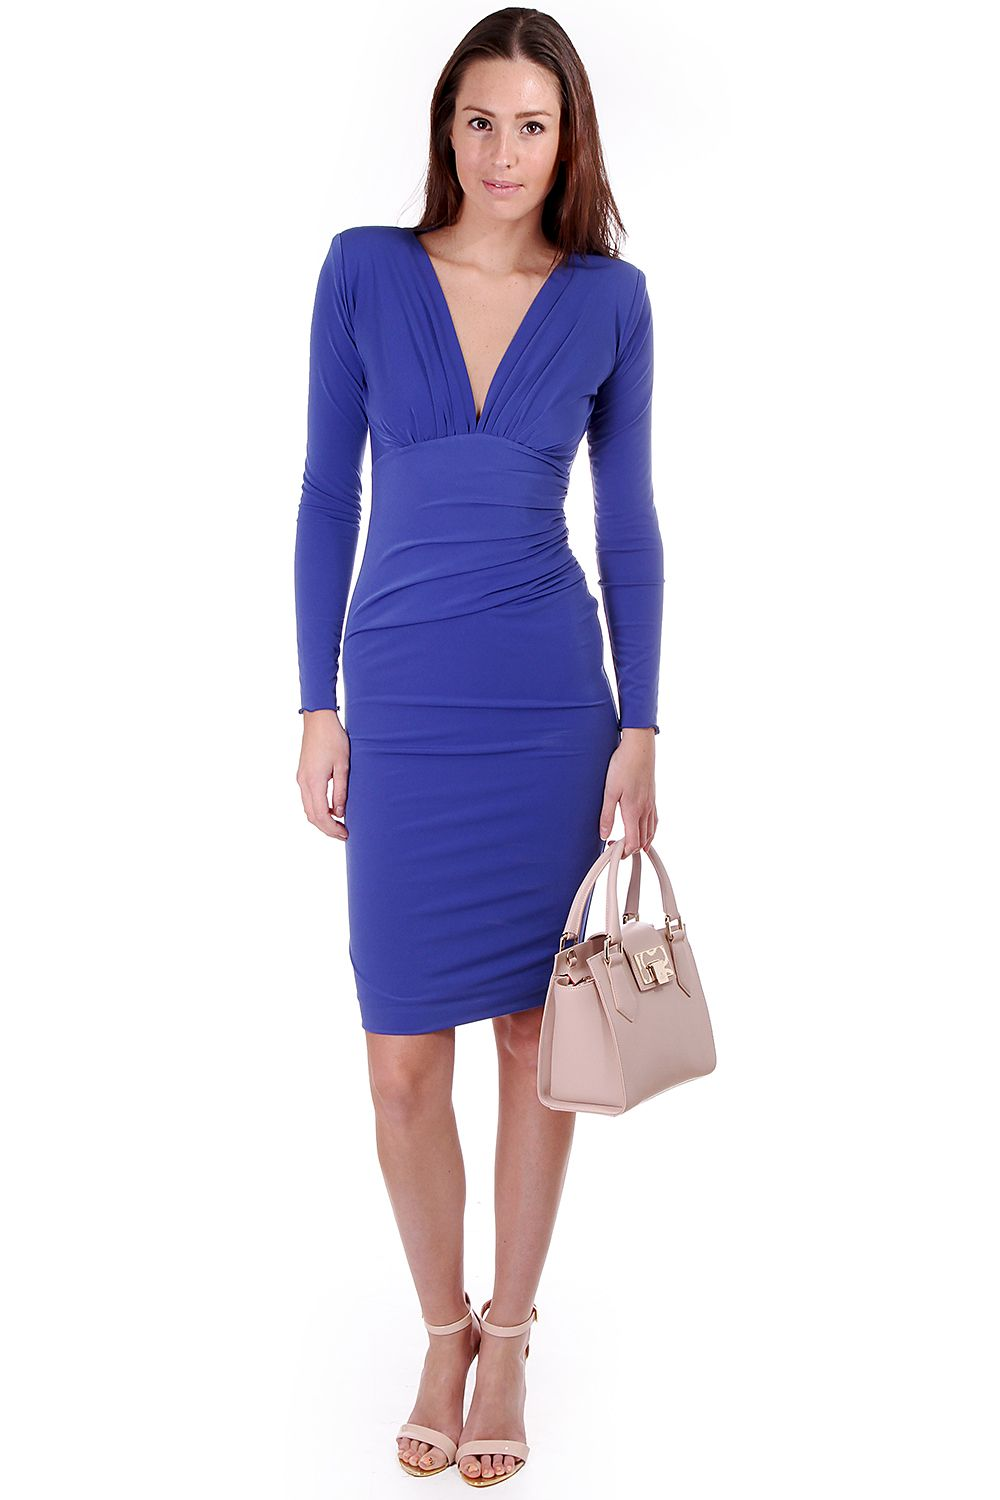 61b0b4e4f453 Kevan Jon plunge dress in maglia jersey - royal blue. Worn here with Nude  Vivienne · Ted Baker ...